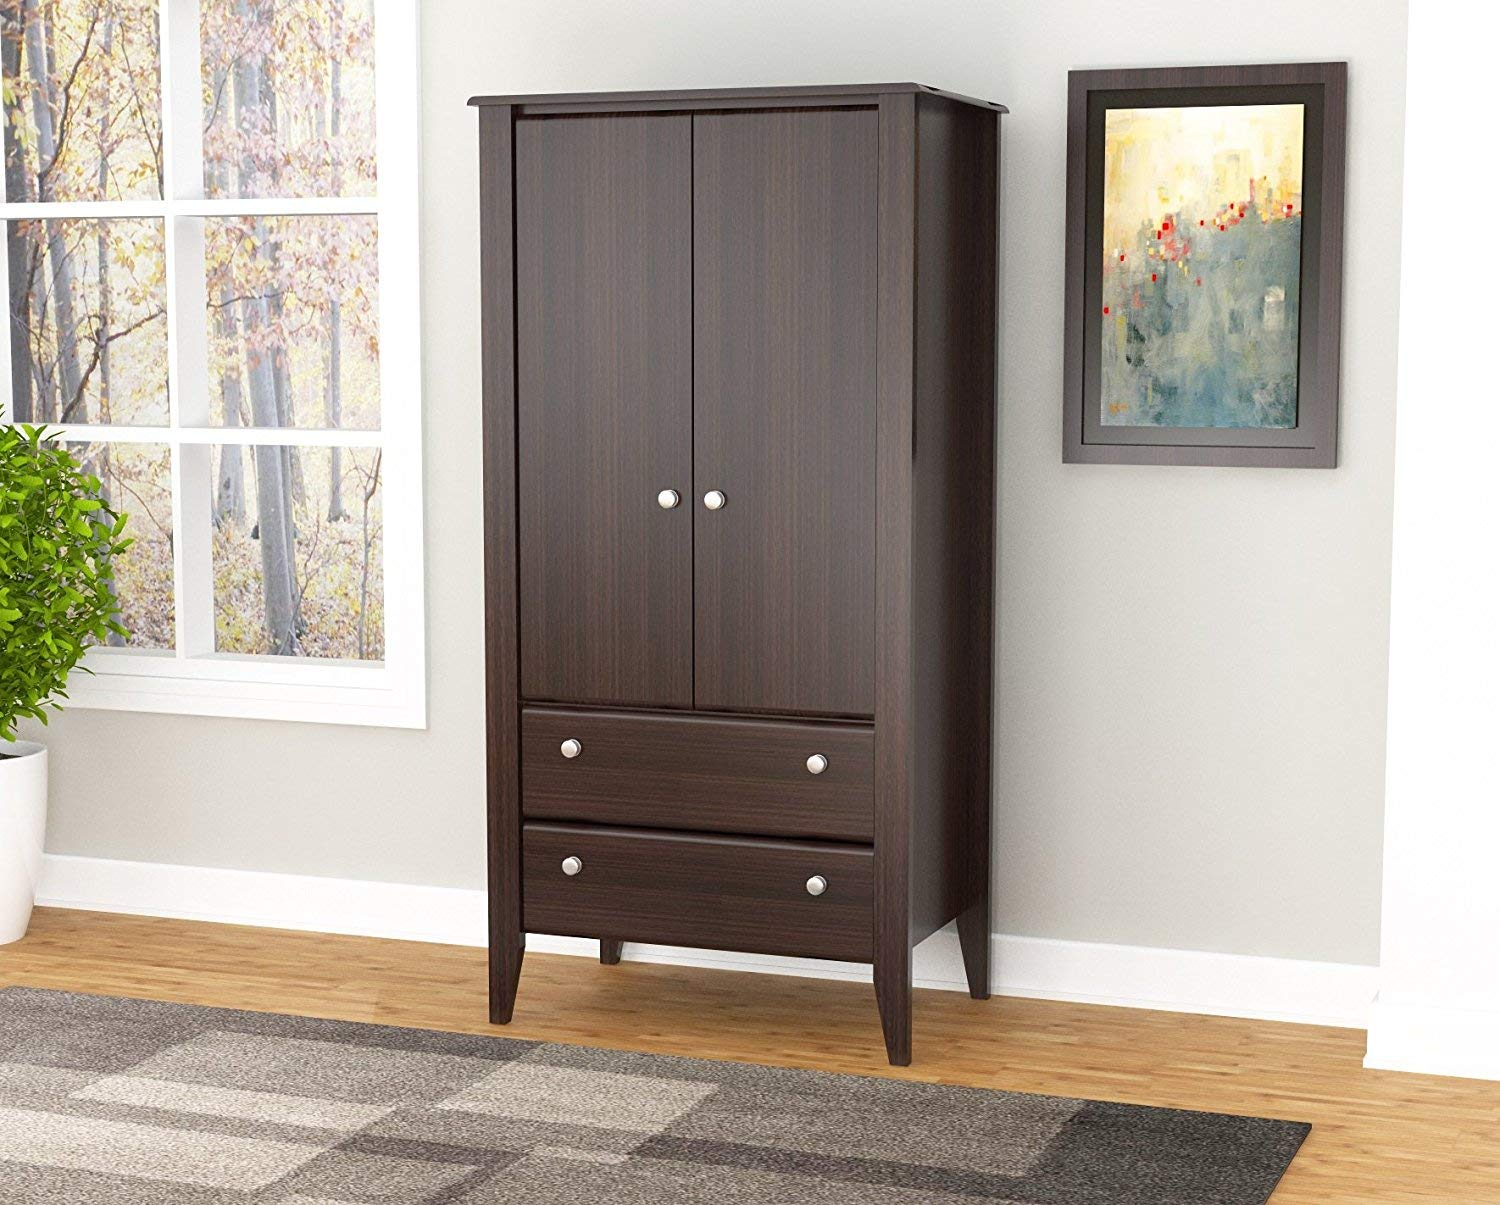 Inval AM-17723 Espresso Wengue Wood Two Door and Drawer Armoire